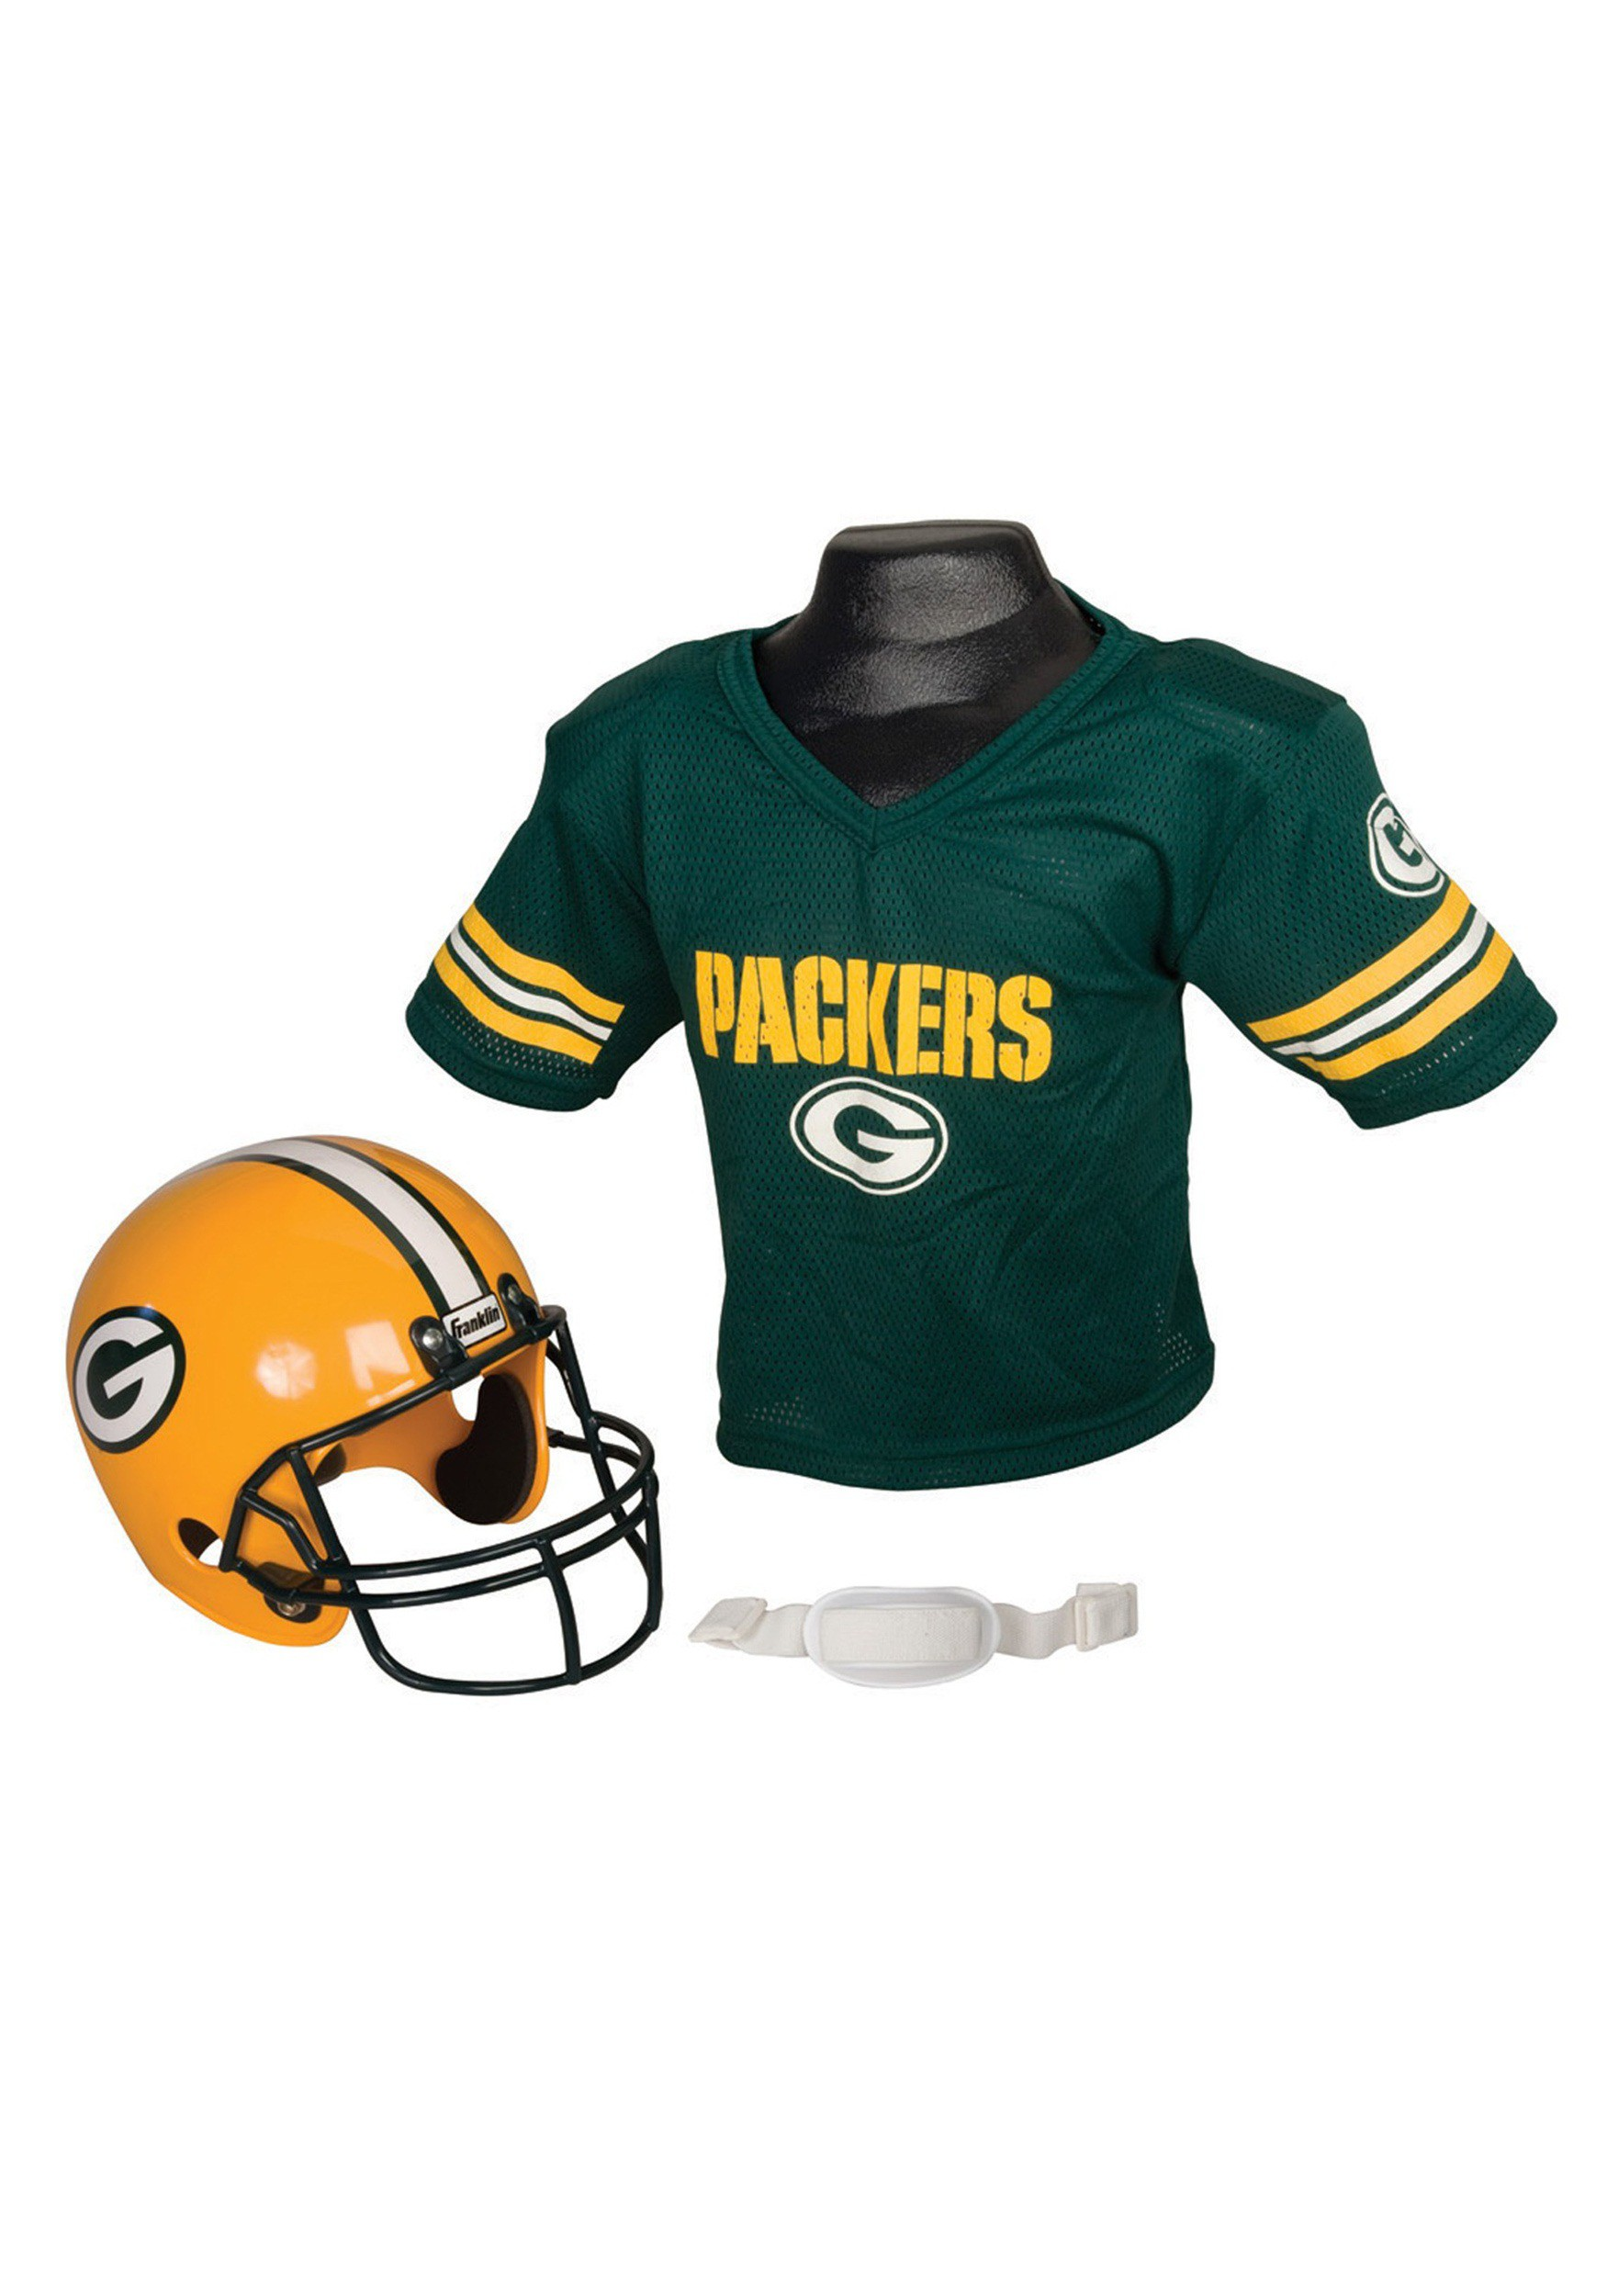 49935aa15 Child NFL Green Bay Packers Helmet and Jersey Costume Set